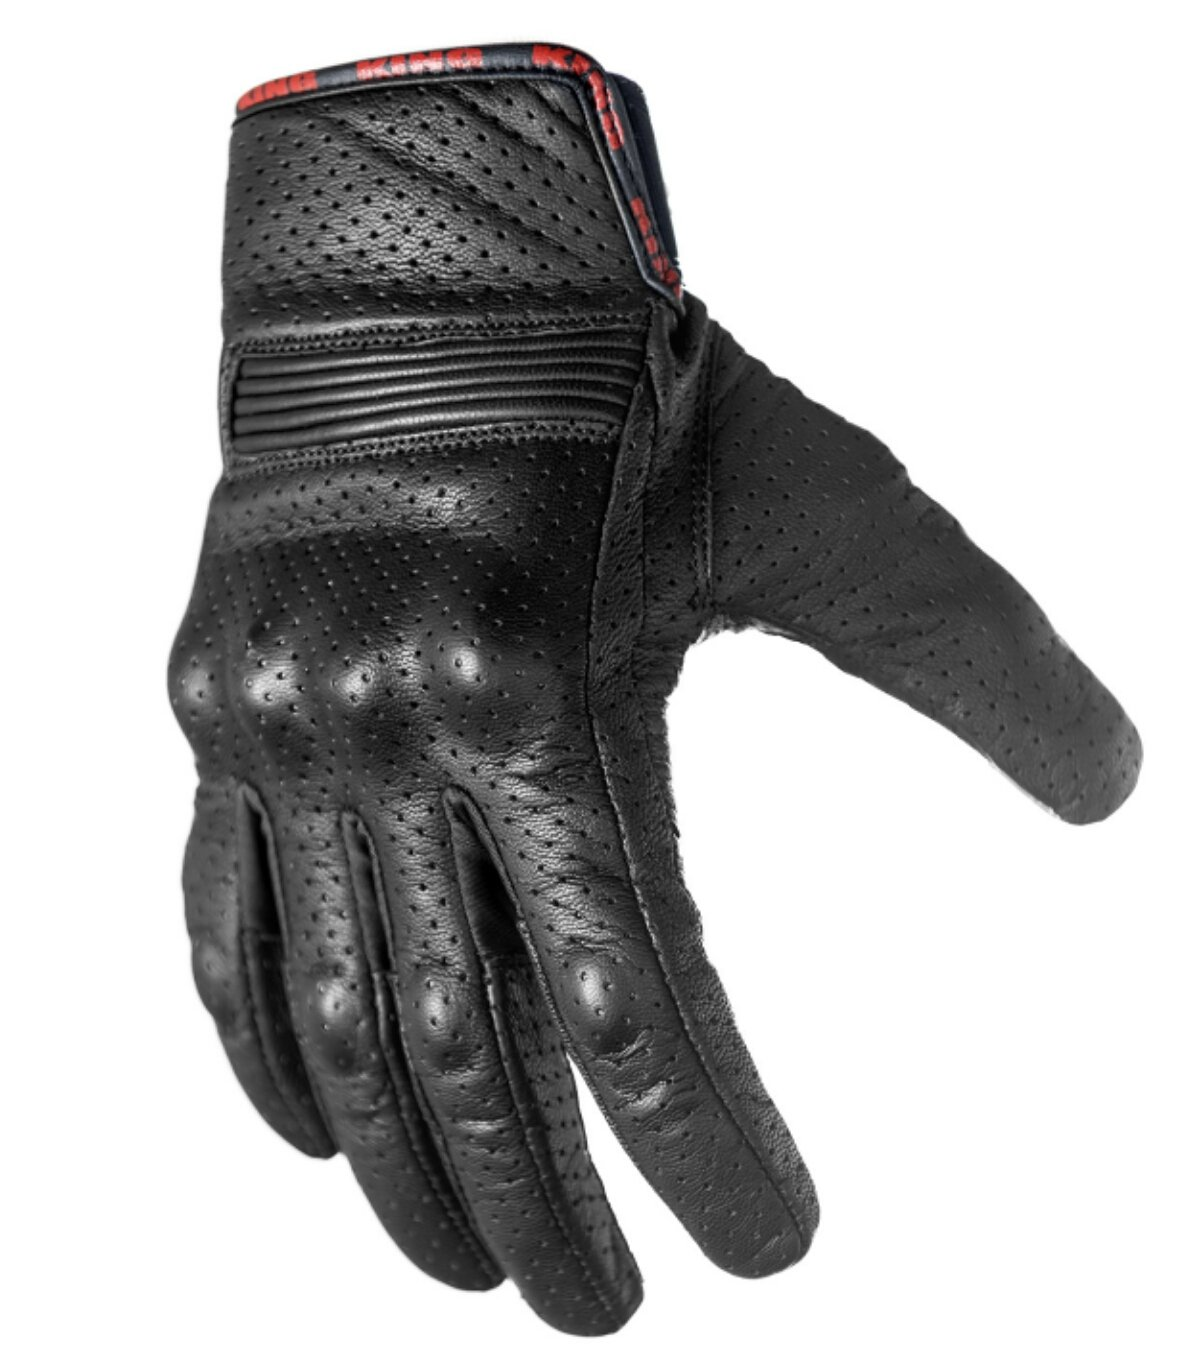 Motorcycle Biker Gloves Black Premium Leather | Padded All Weather Feature for Men and Women | Breathable Moisture Wick Air Flow Technology Between Fingers | SWIFT (Black-2X)